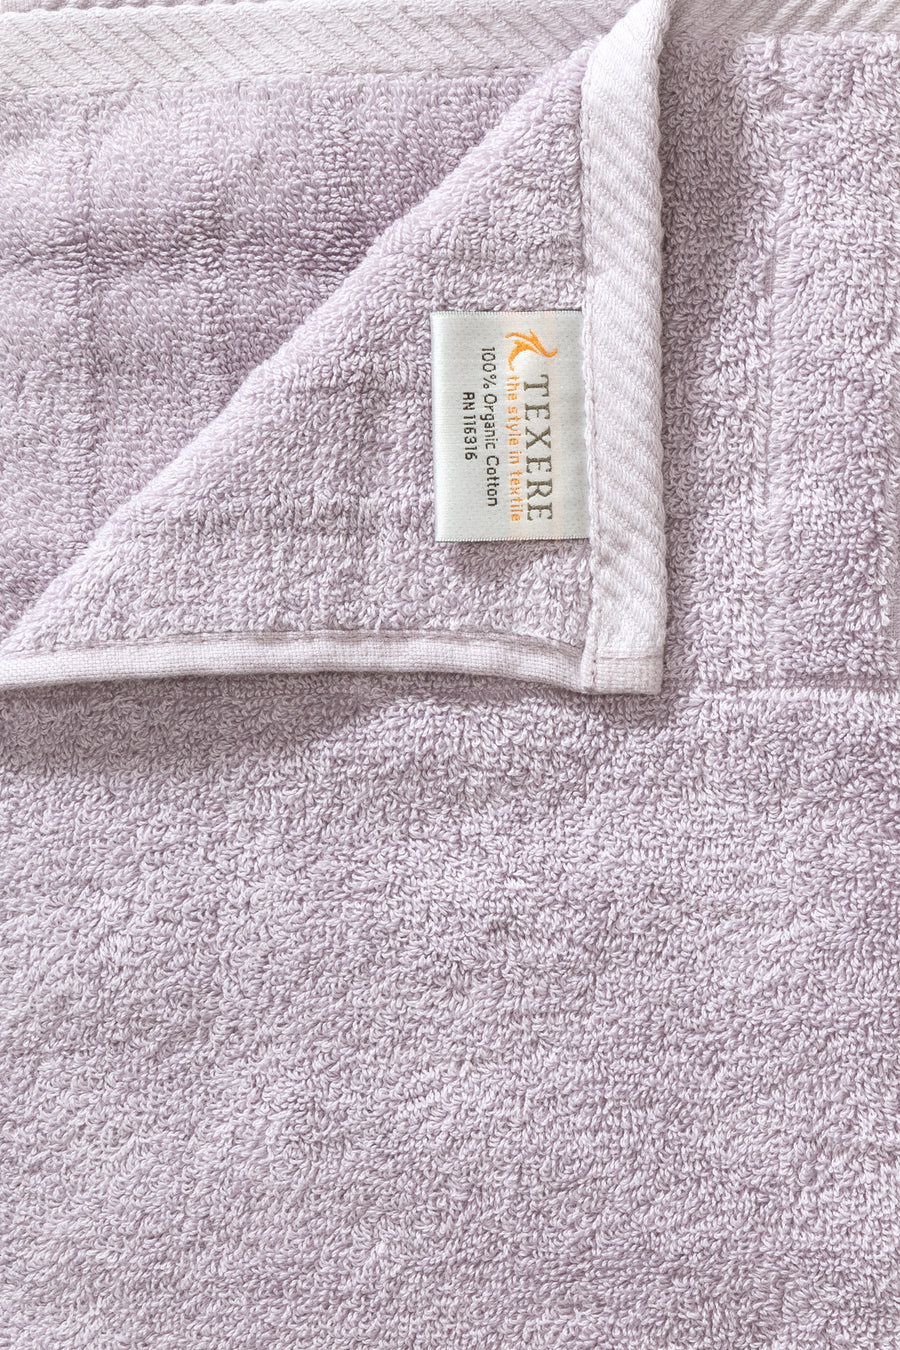 Bath Towel - Organic Cotton Dobby - testing23451234 - Towels